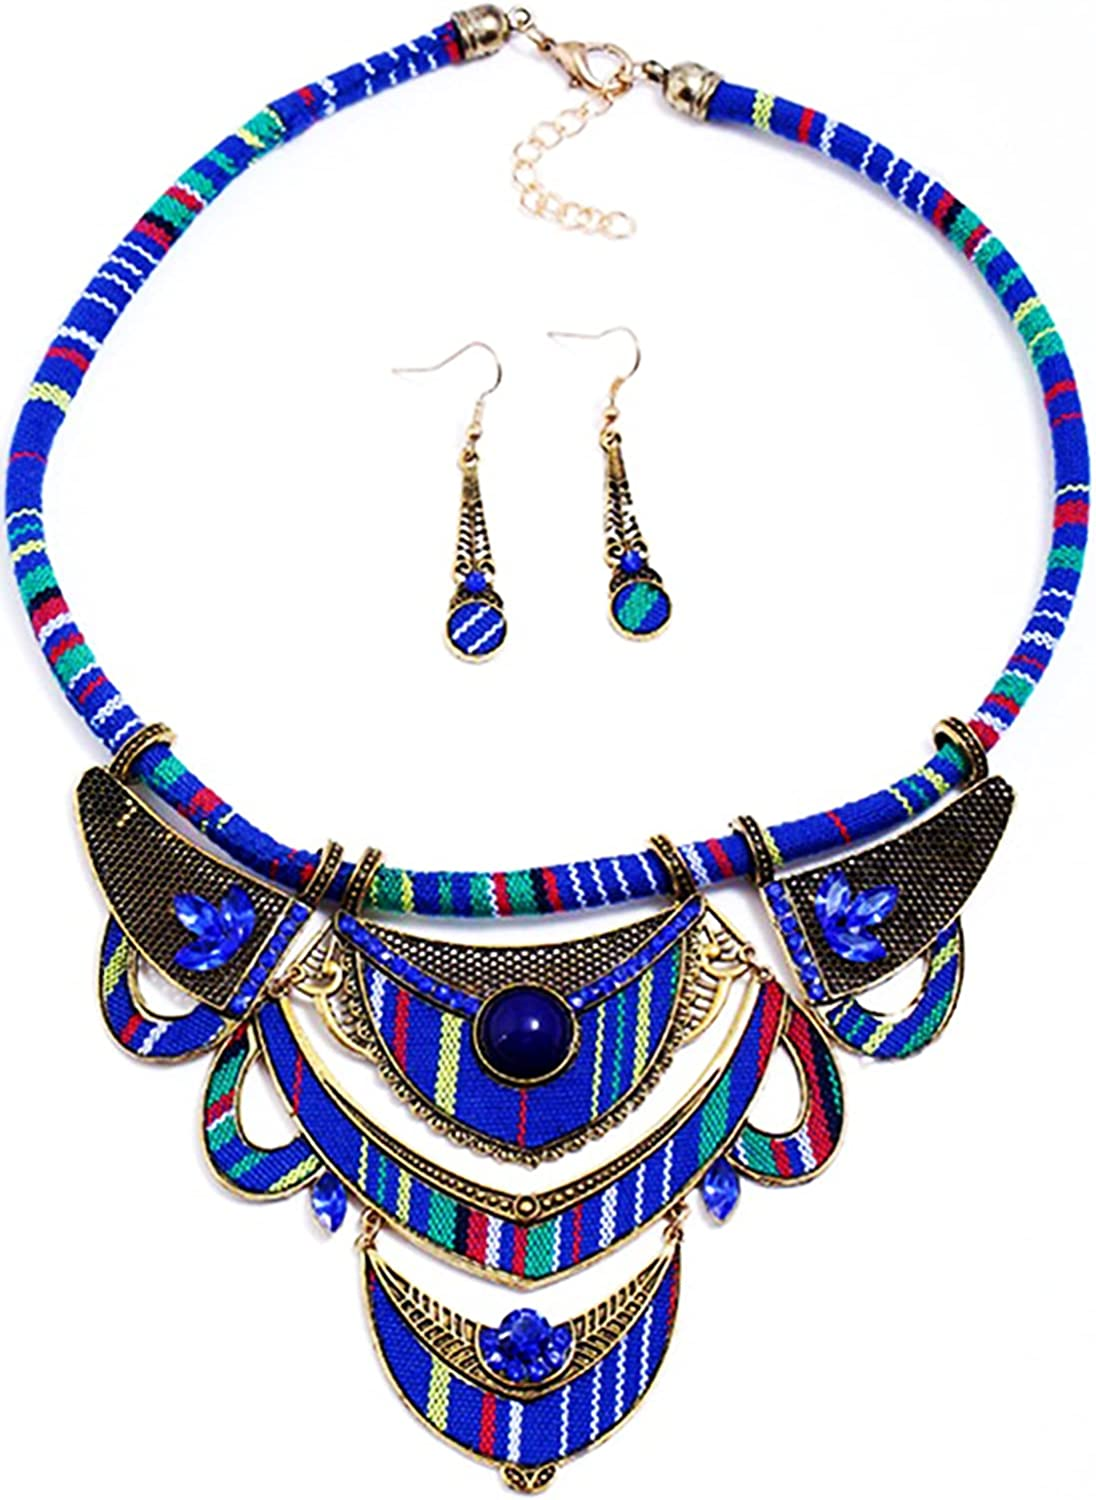 DOAFRIAFRI African Style Necklace Tribal Colorful Collar Choker Ankara Necklace Earrings Jewelry Set